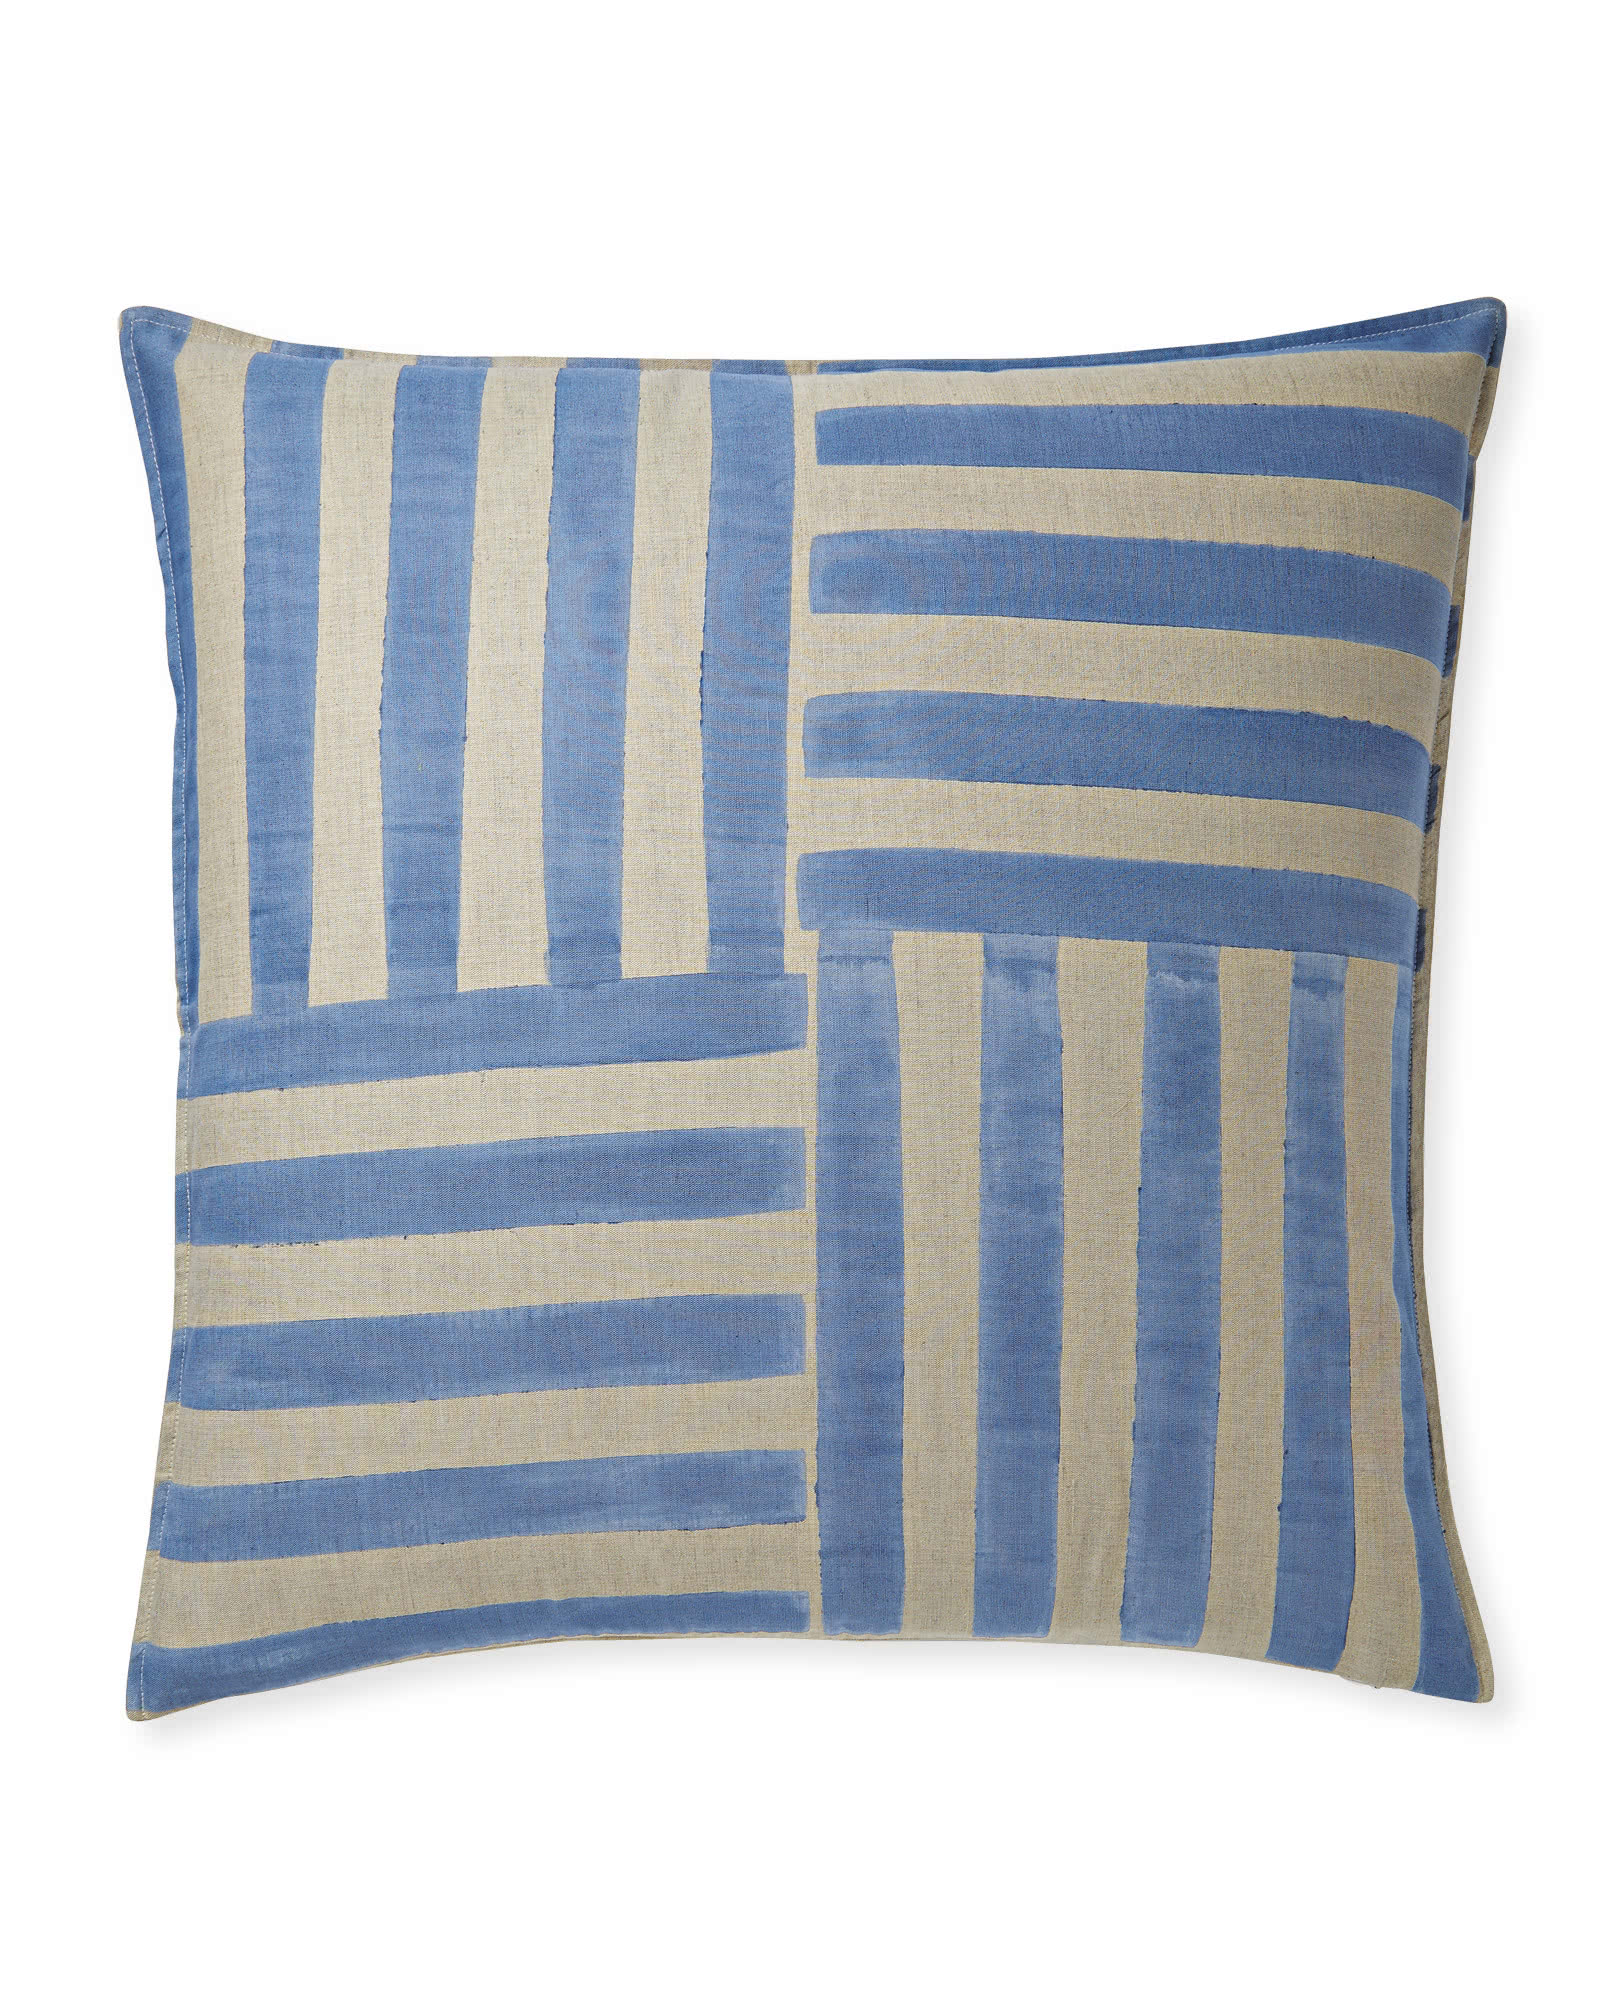 Nantucket Handpainted Pillow Cover